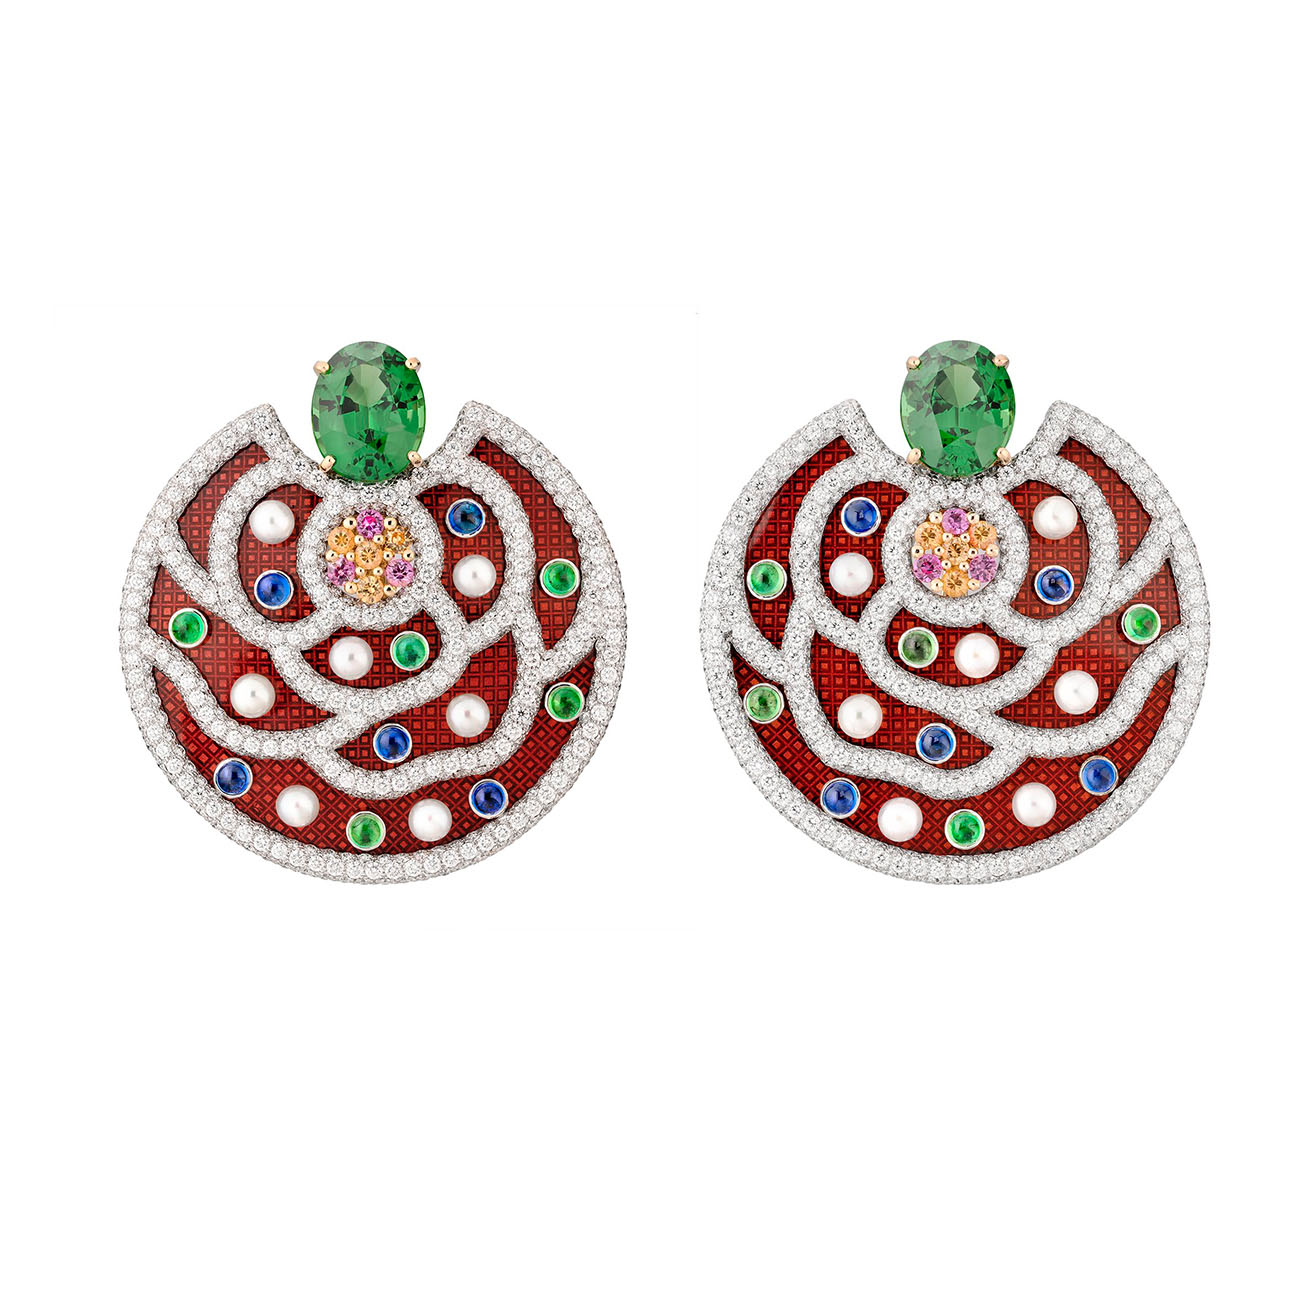 Chanel High Jewelry Collection LE PARIS RUSSE DE CHANEL Folklore Earrings